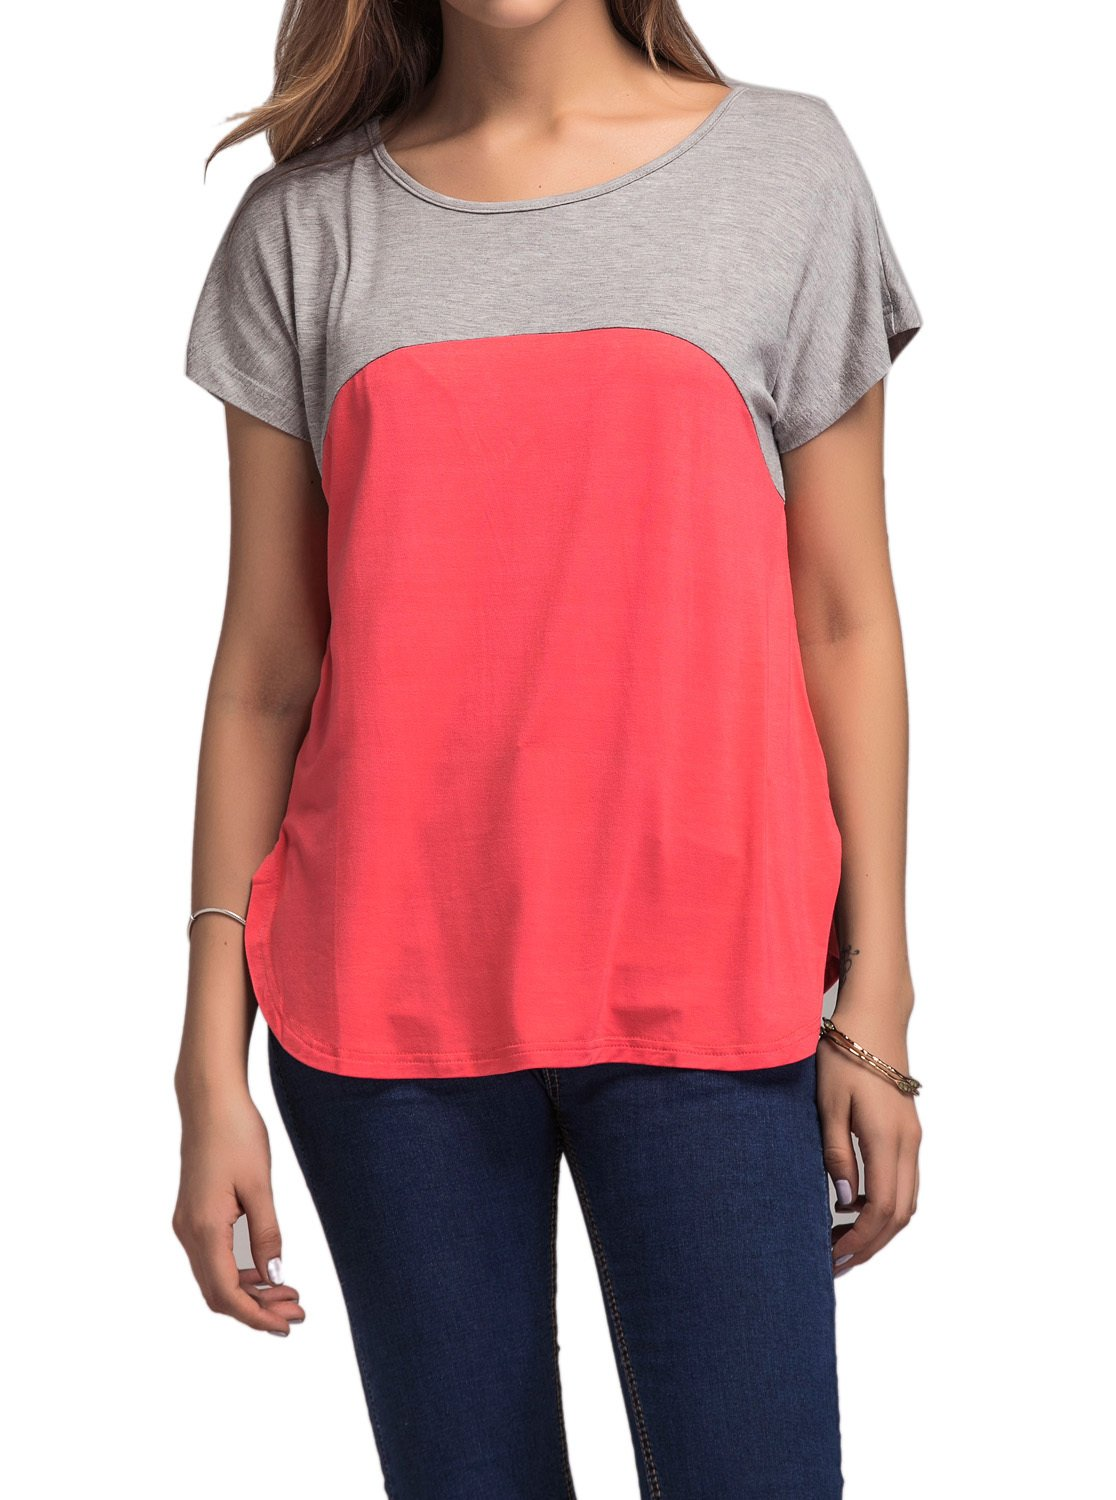 Adreamly Women's Casual Color Block Raglan Short Sleeve Blouse Shirt Tee Tunic Tops Coral Pink 2X-Large